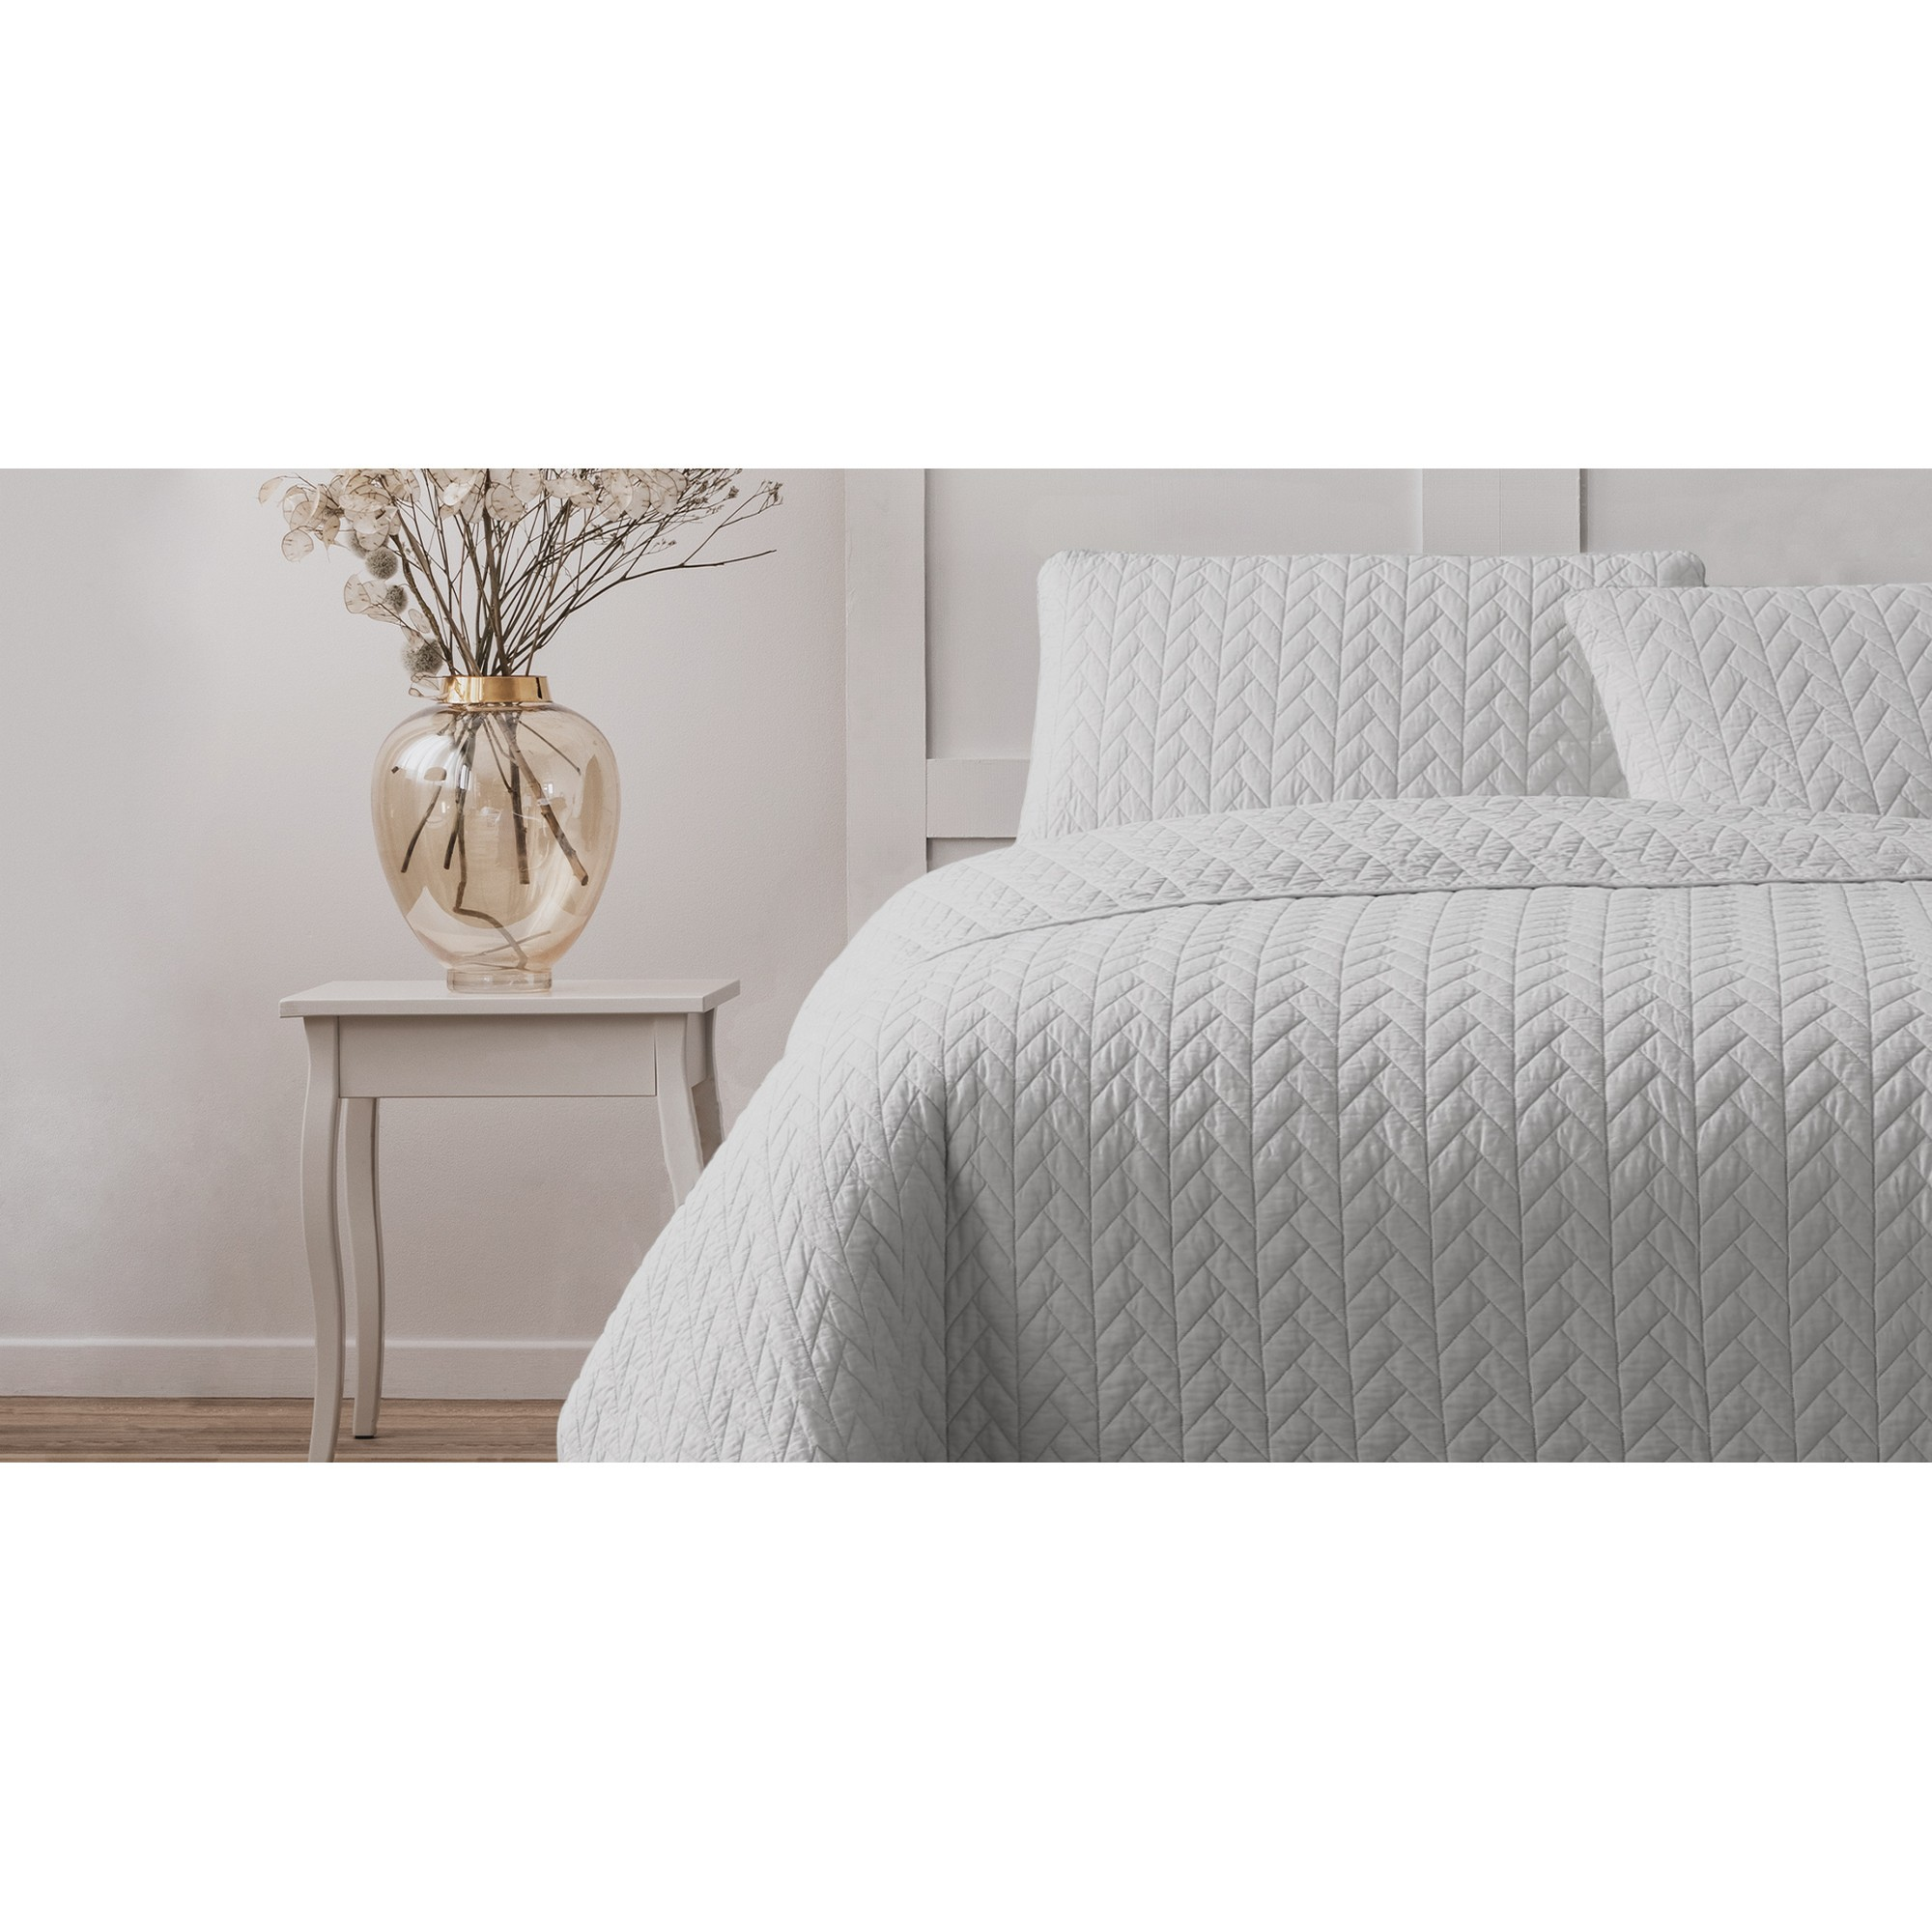 Ardor Boudoir Maya Quilted Quilt Cover Set, Queen, White